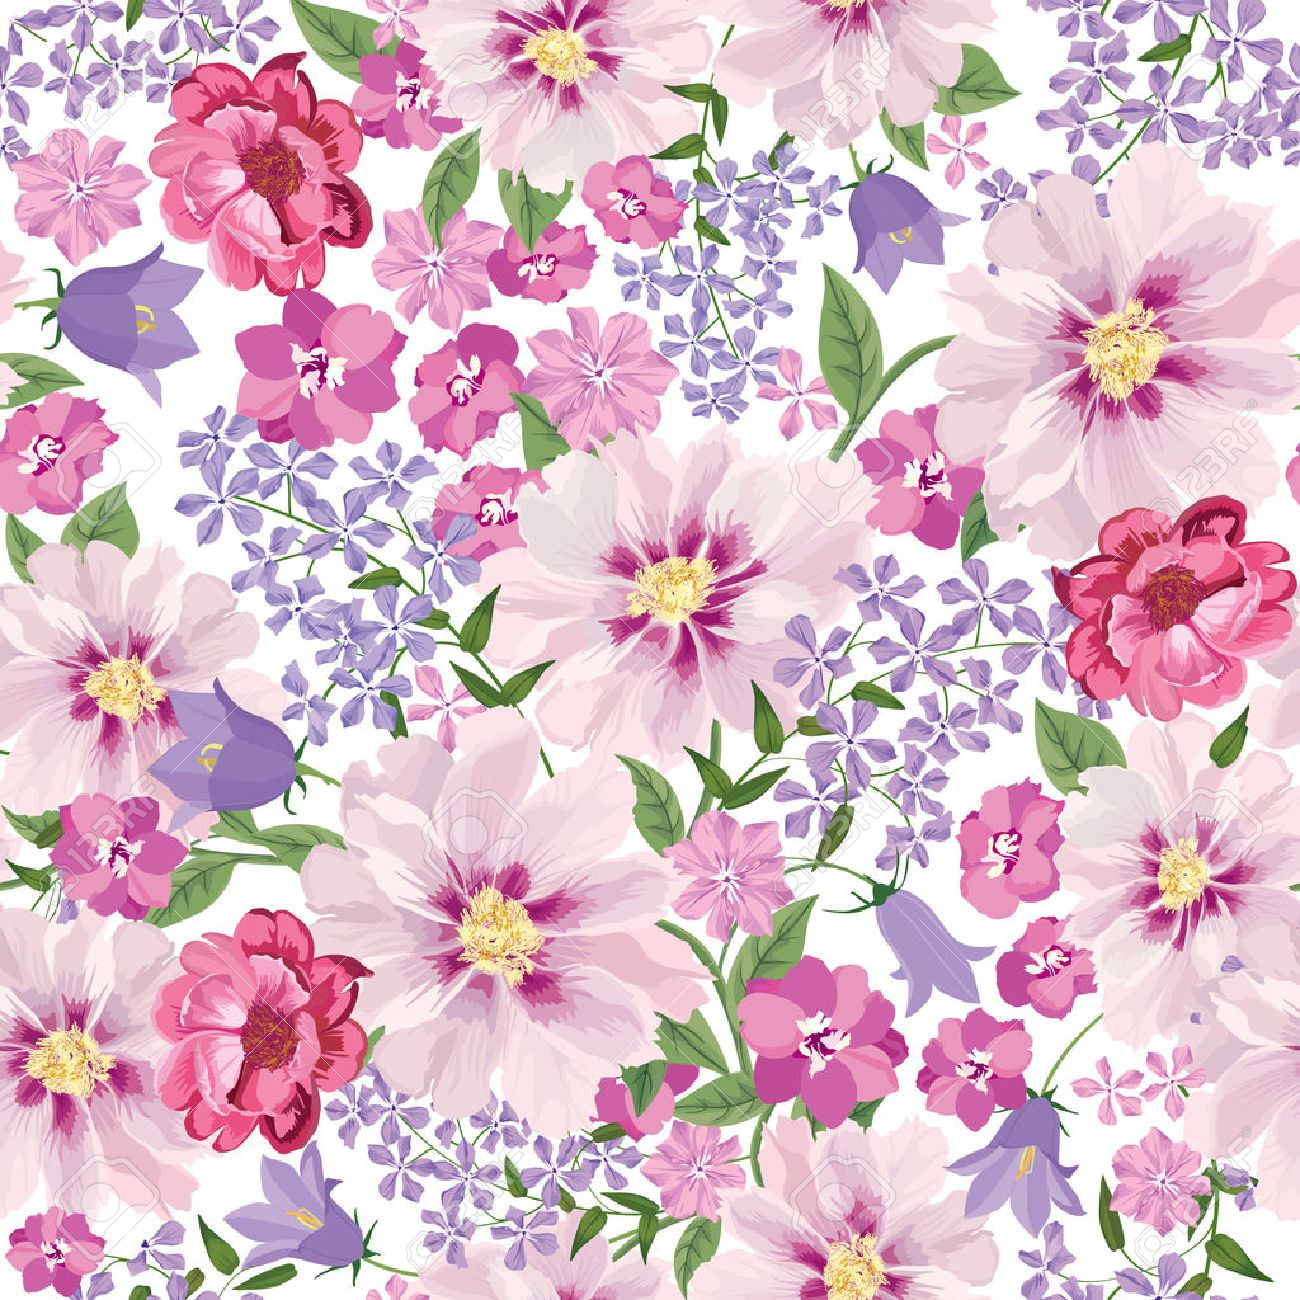 Floral seamless pattern. Flower background. Floral seamless texture with flowers. Flourish tiled wallpaper Stock Vector - 46073596